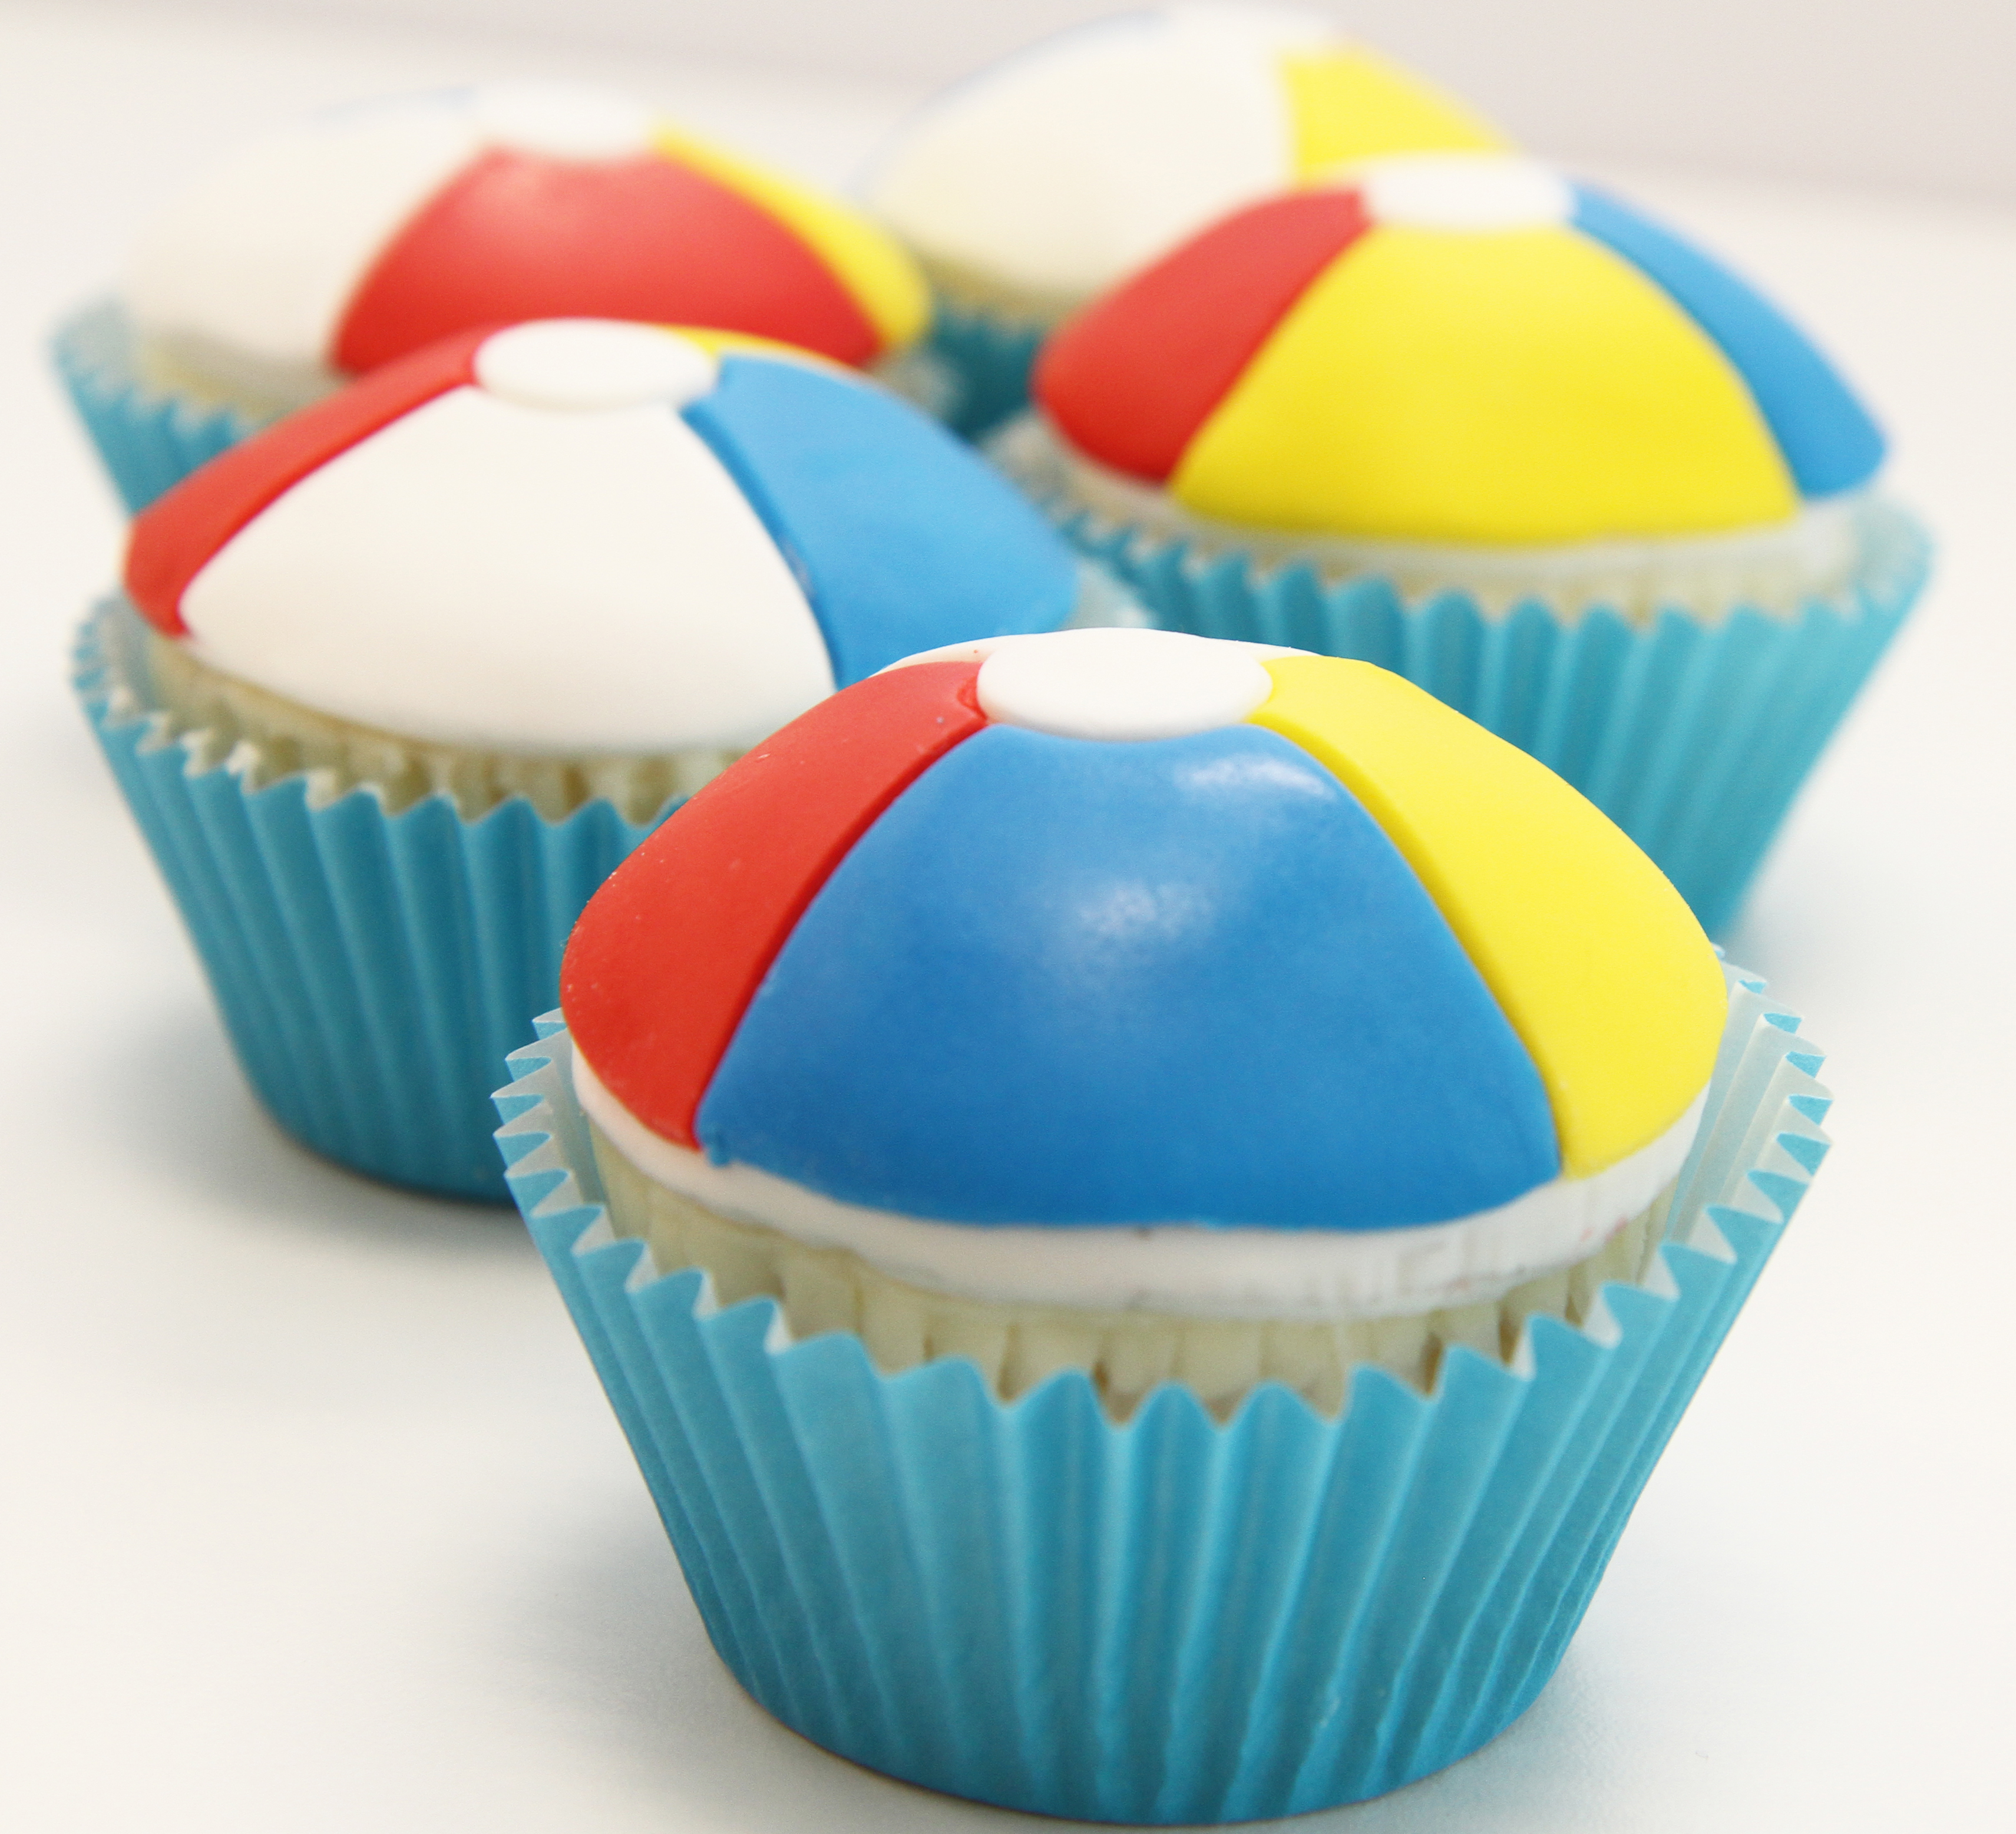 beach-ball-11.JPG#asset:15571